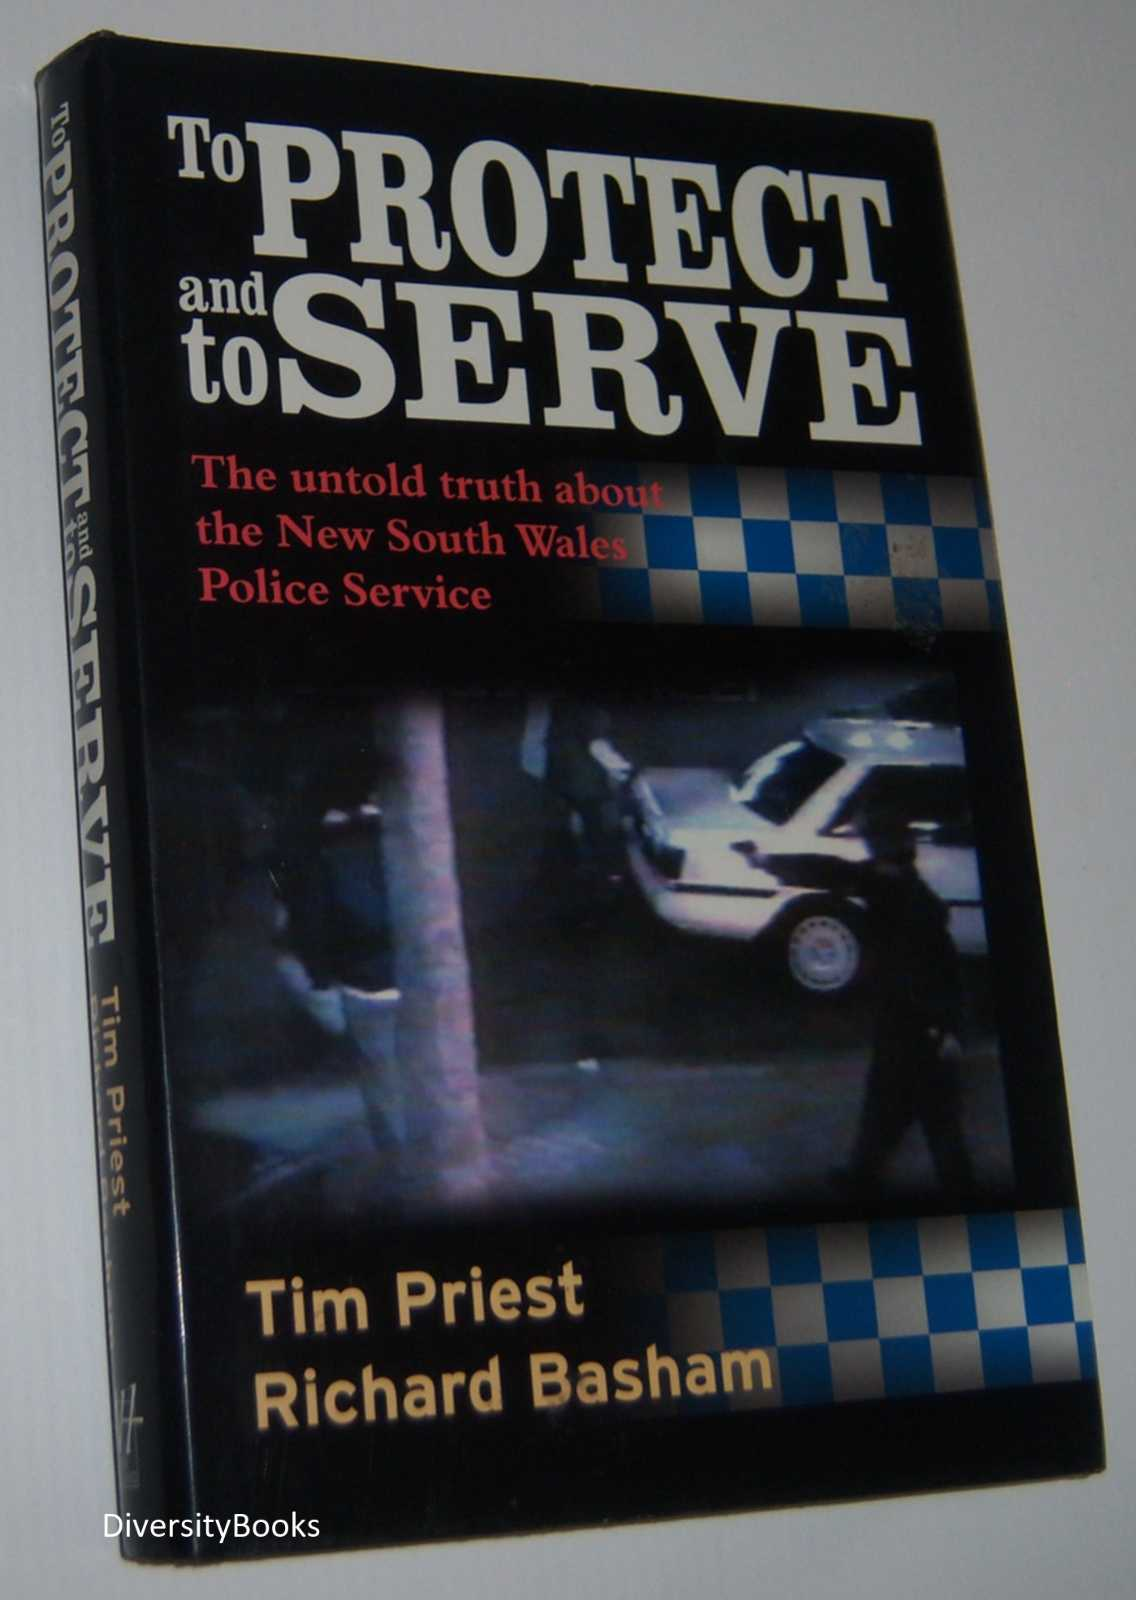 Image for TO PROTECT AND TO SERVE: The Untold Truth about the New South Wales Police Service